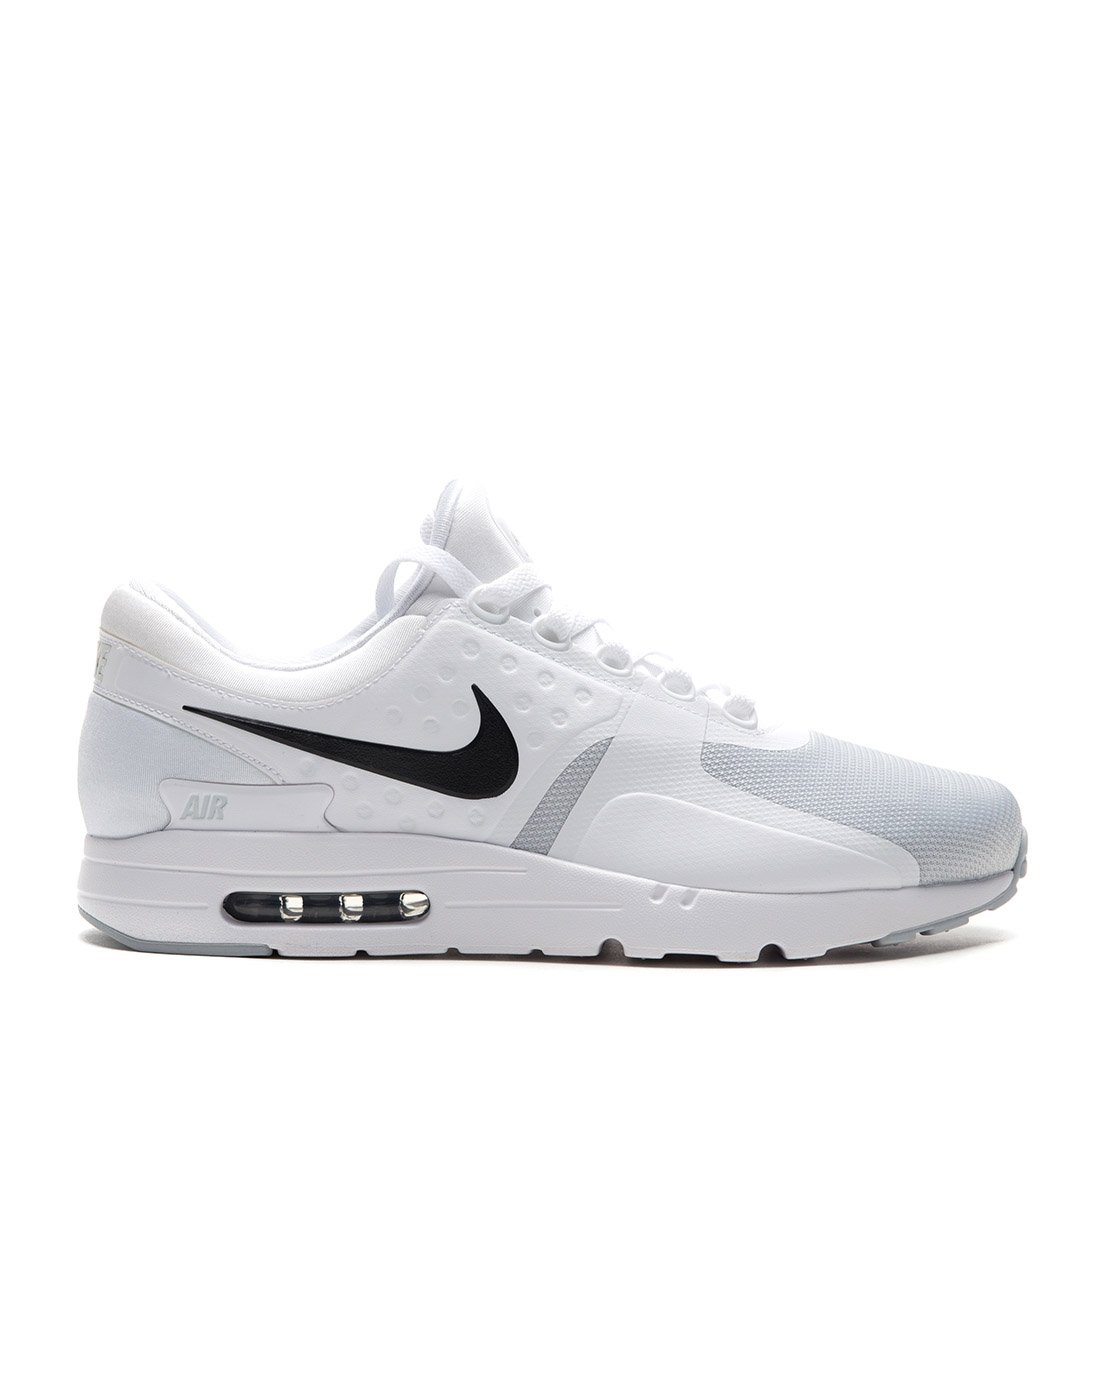 best service f01e3 f2a8e Galleon - NIKE Air Max Zero Essential Mens Running Trainers 876070 Sneakers  Shoes (UK 8 US 9 EU 42.5, White Black Cool Grey 105)